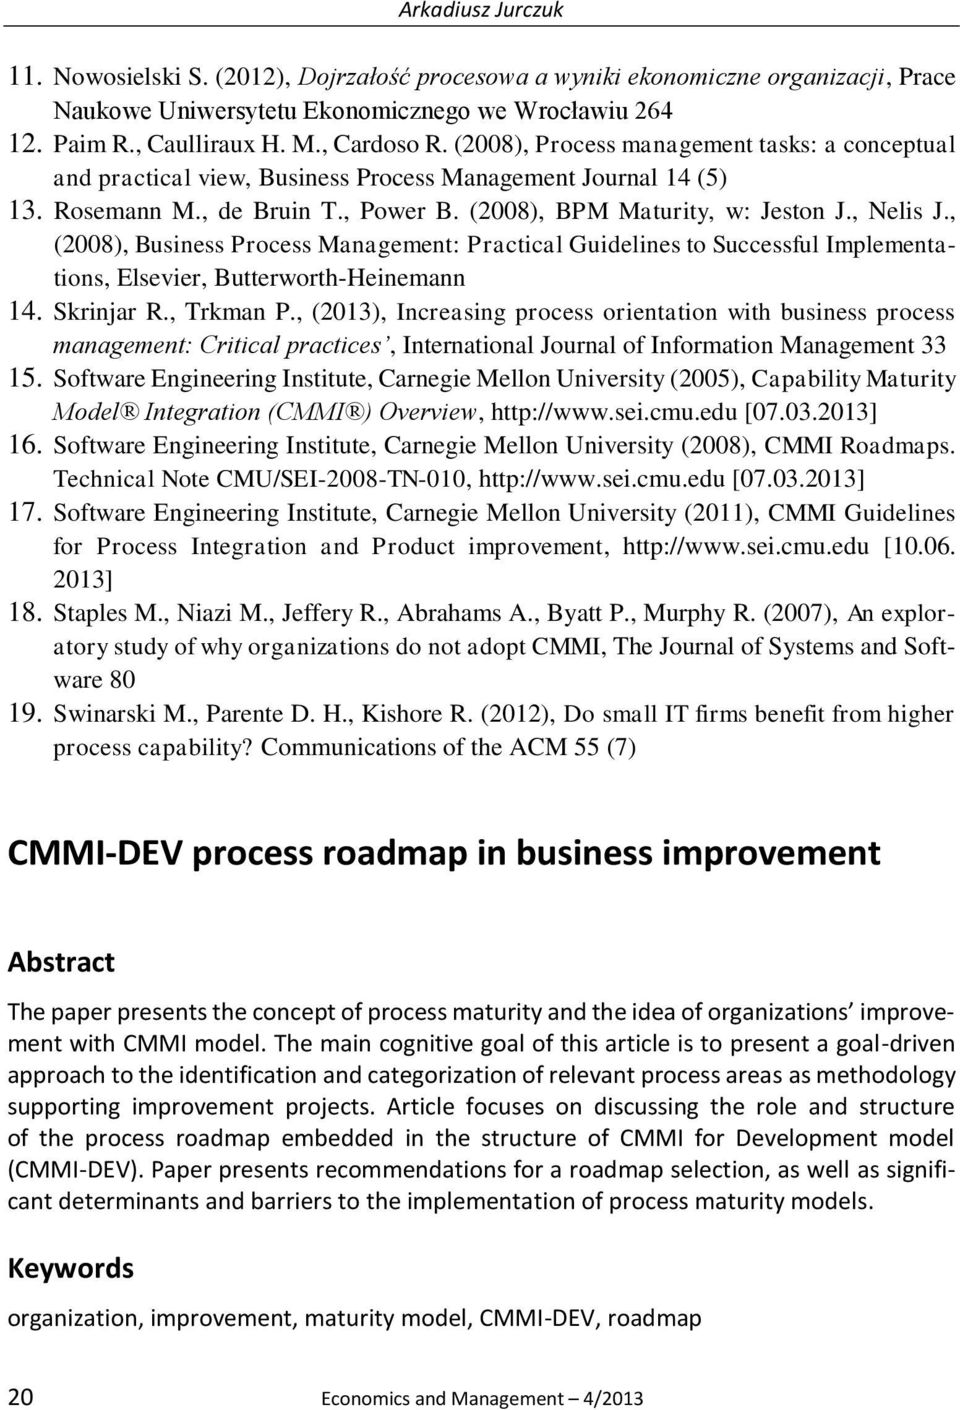 , (2008), Business Process Management: Practical Guidelines to Successful Implementations, Elsevier, Butterworth-Heinemann 14. Skrinjar R., Trkman P.